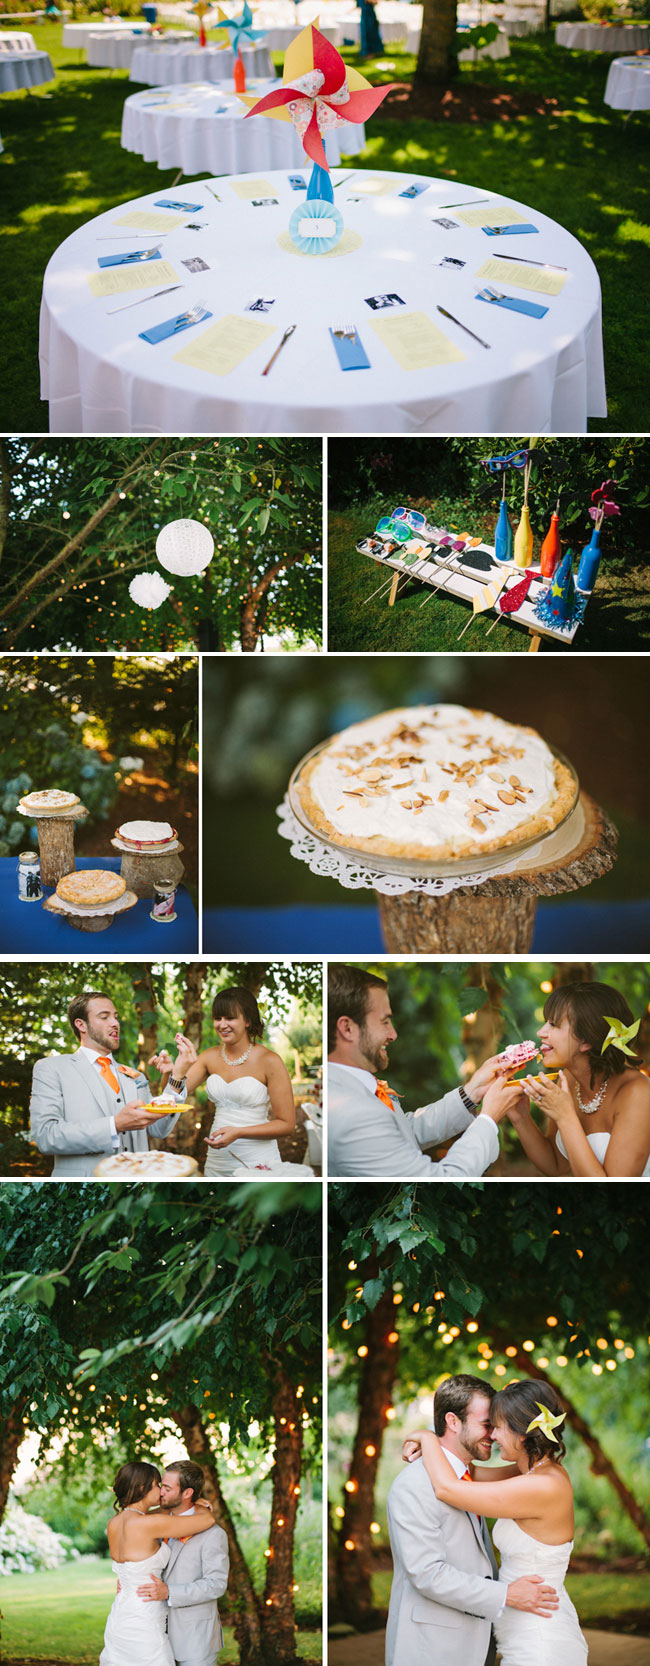 colorful pinwheel centerpiece, pies on wood logs, bride and groom eating pie